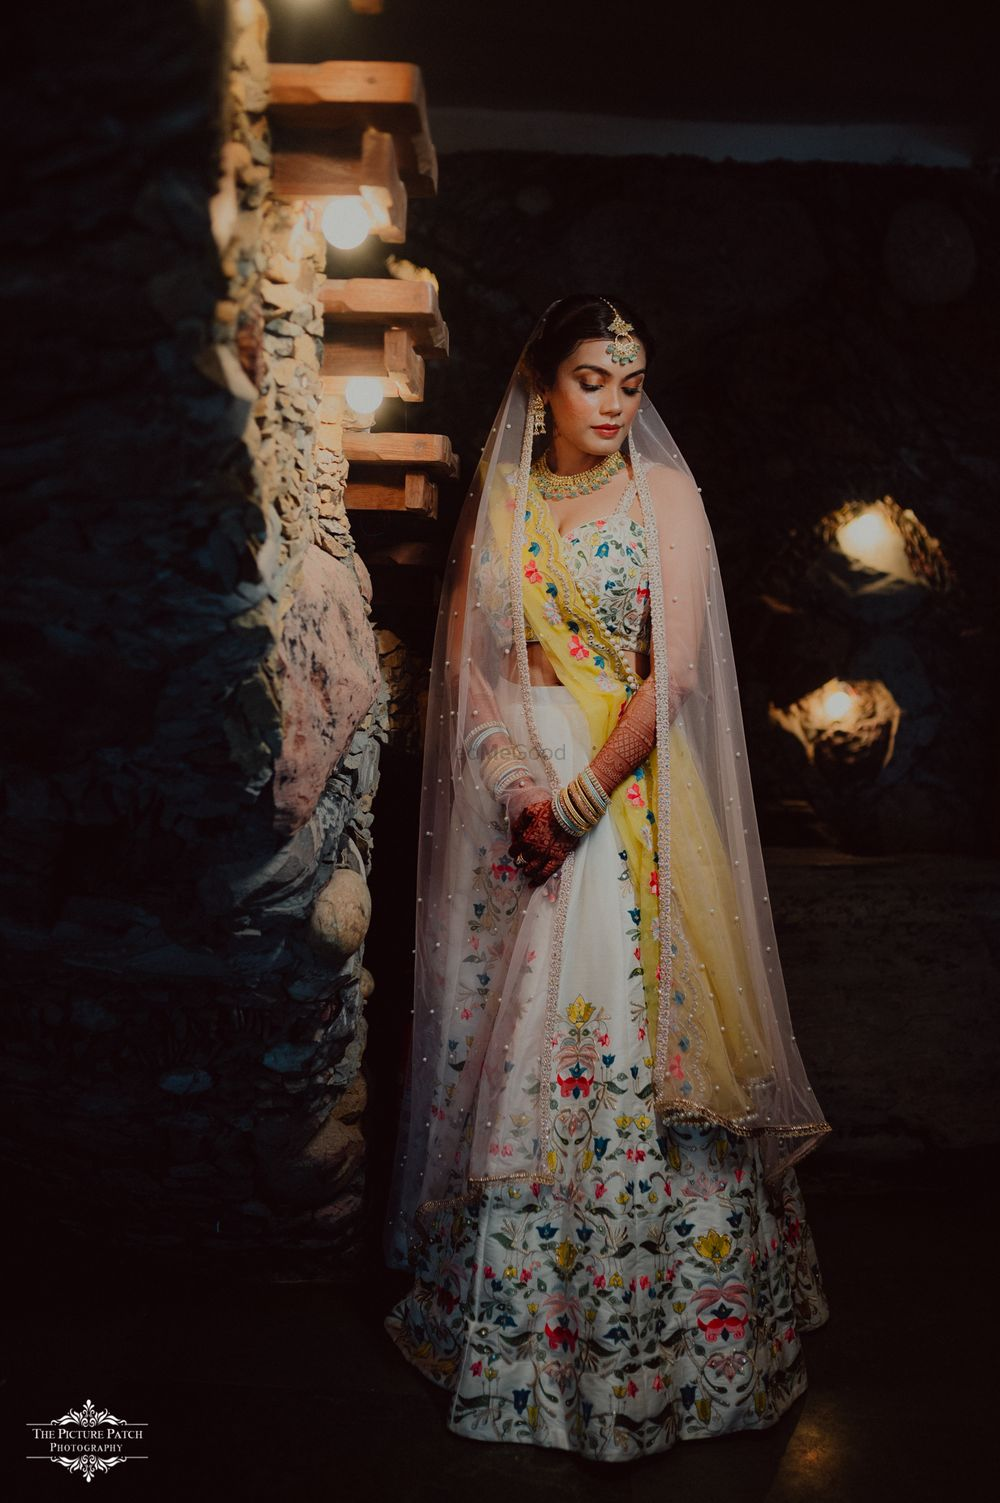 Photo From Dhwani & Monish - By The Picture Patch Photography